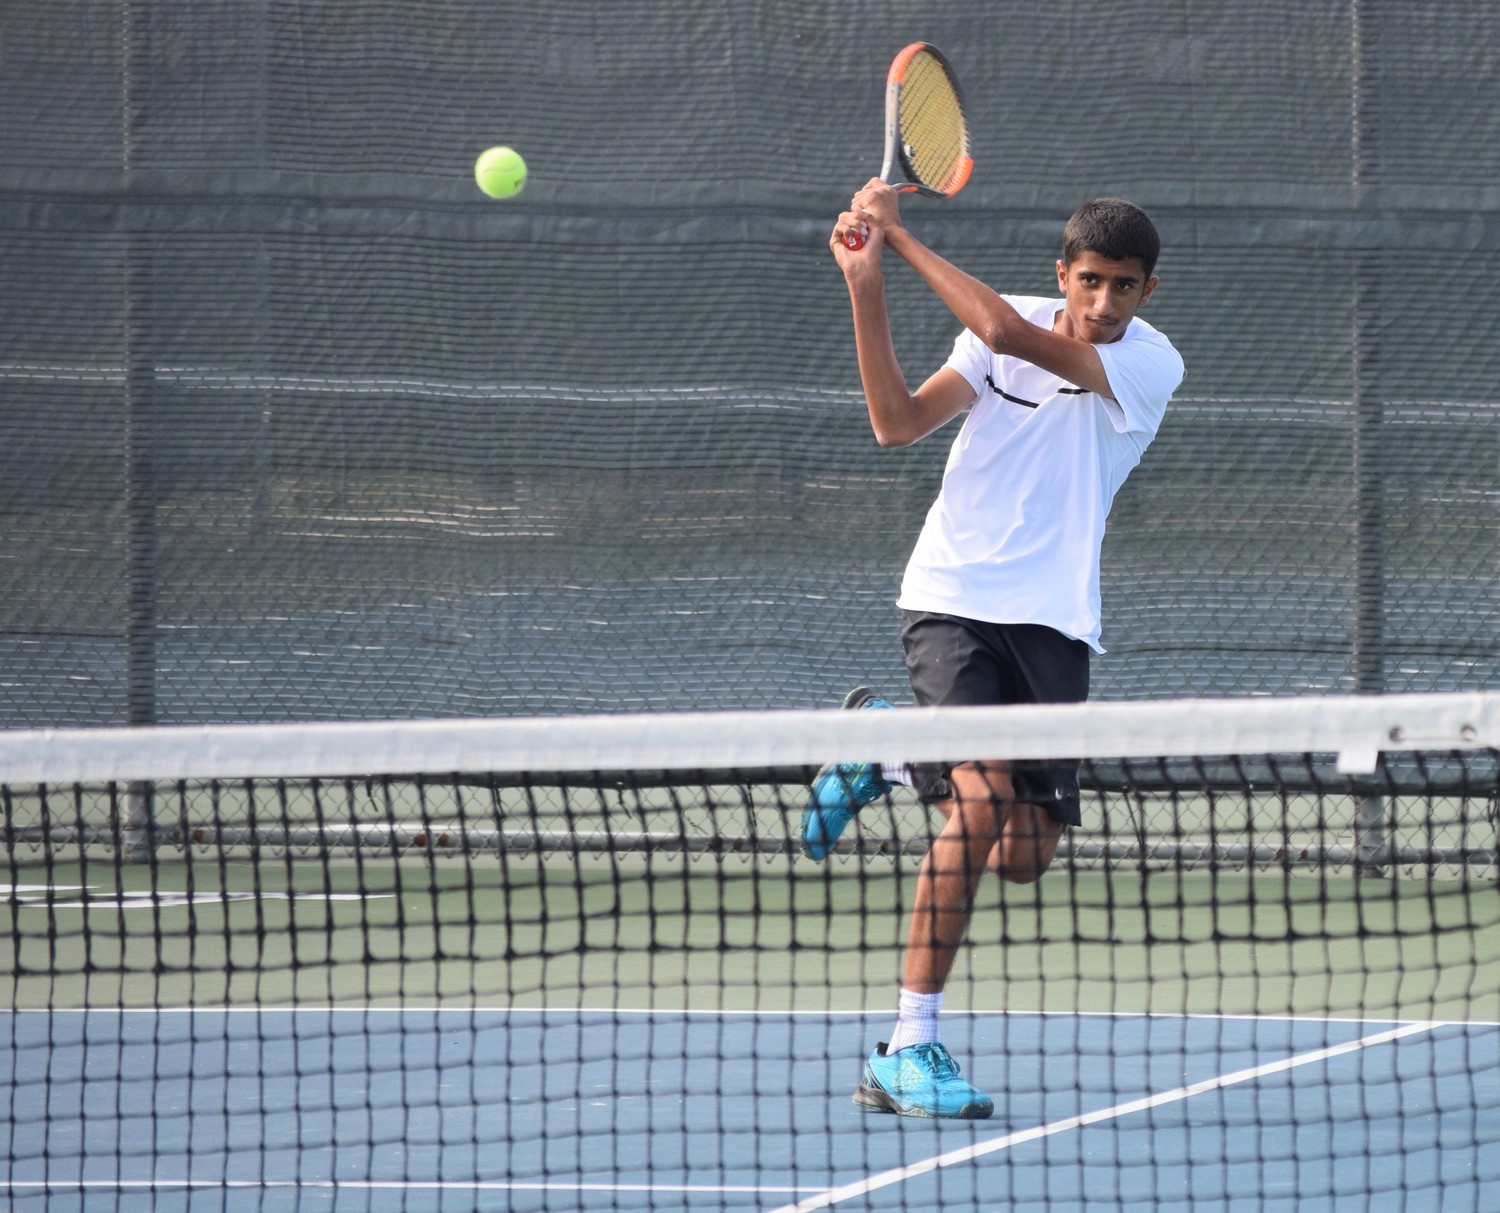 Vandegrift's Jai Naik competed at the state tennis tournament in College Station last week. He lost to Westwood's Gaurav Singh 6-3, 7-6 (5) in the semifinals.